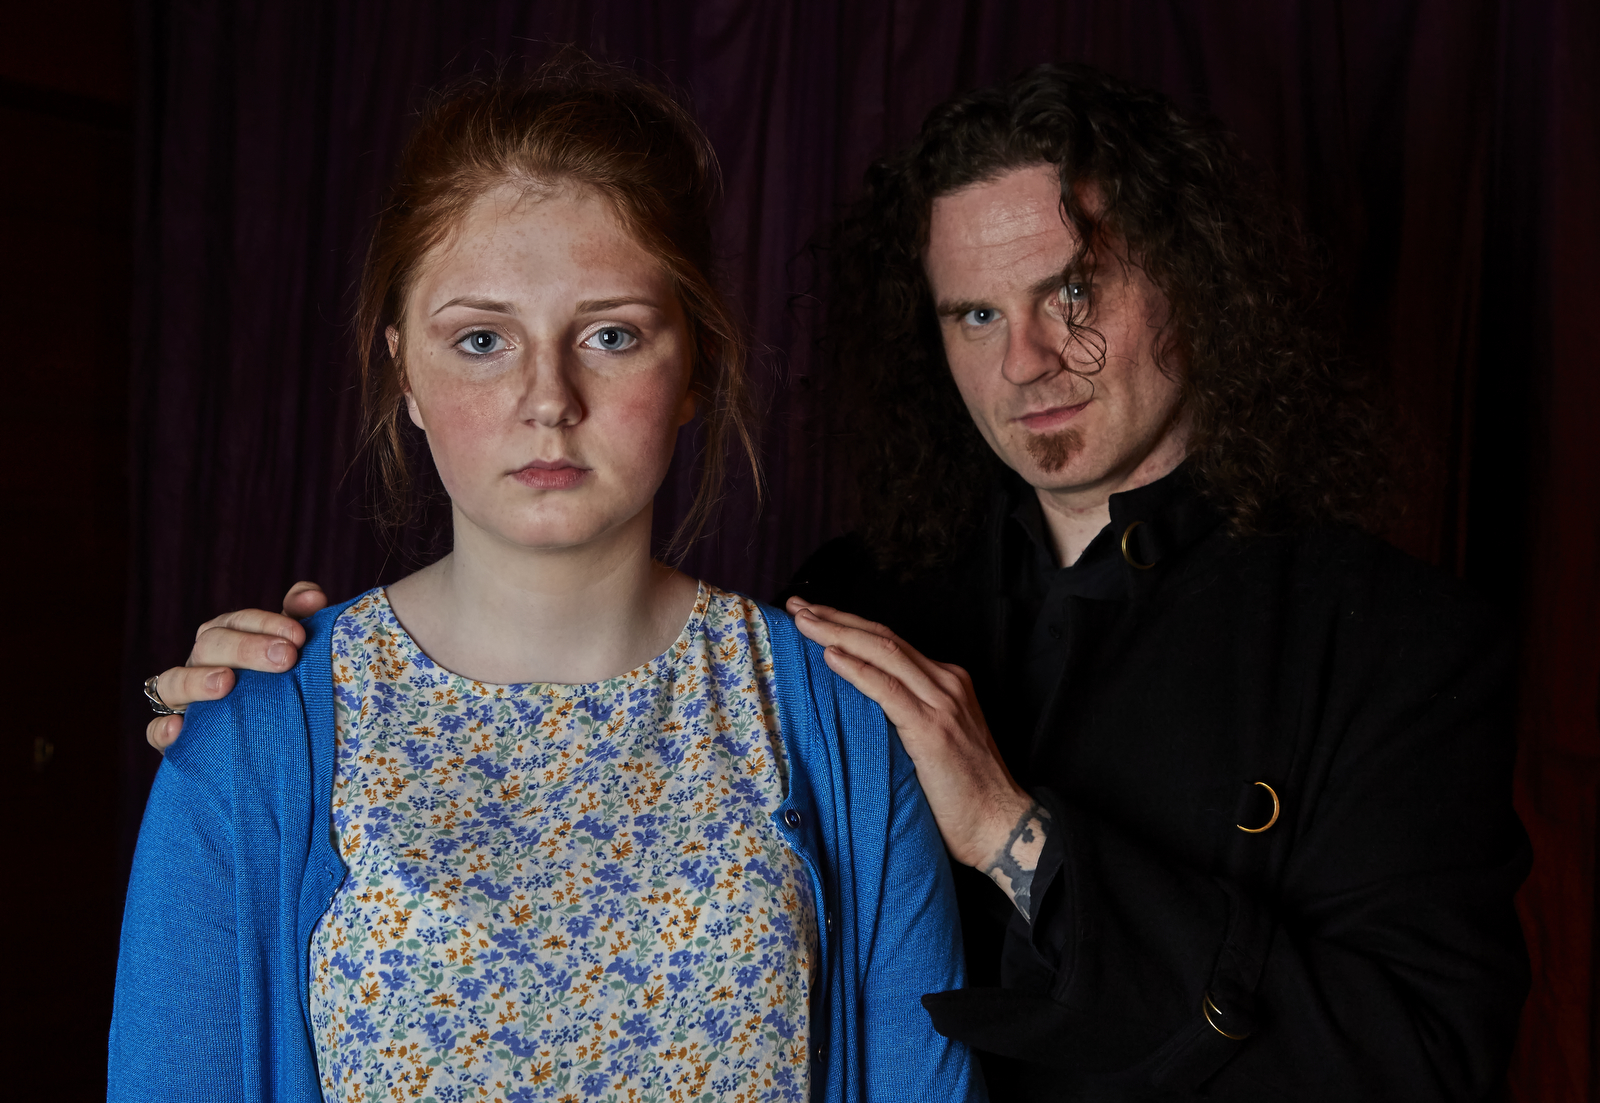 Caitlin Blackwood and Billy Kirkwood Filming a promotional 'Cops and Monsters' video - 24 May 2015